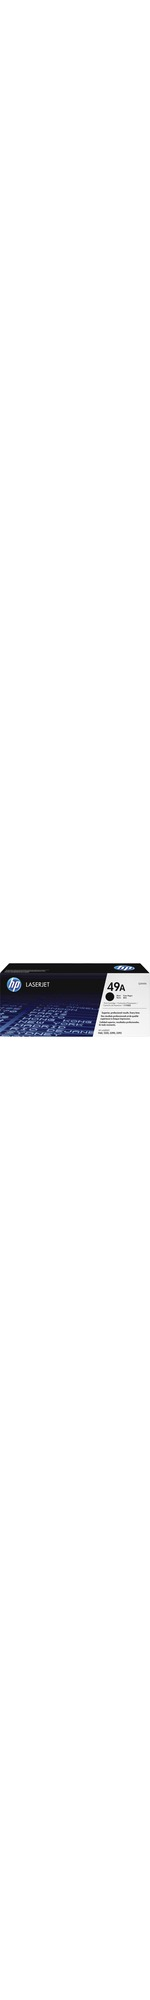 HP 49A Toner Cartridge - Black - Laser - 2500 Page - 1 Each